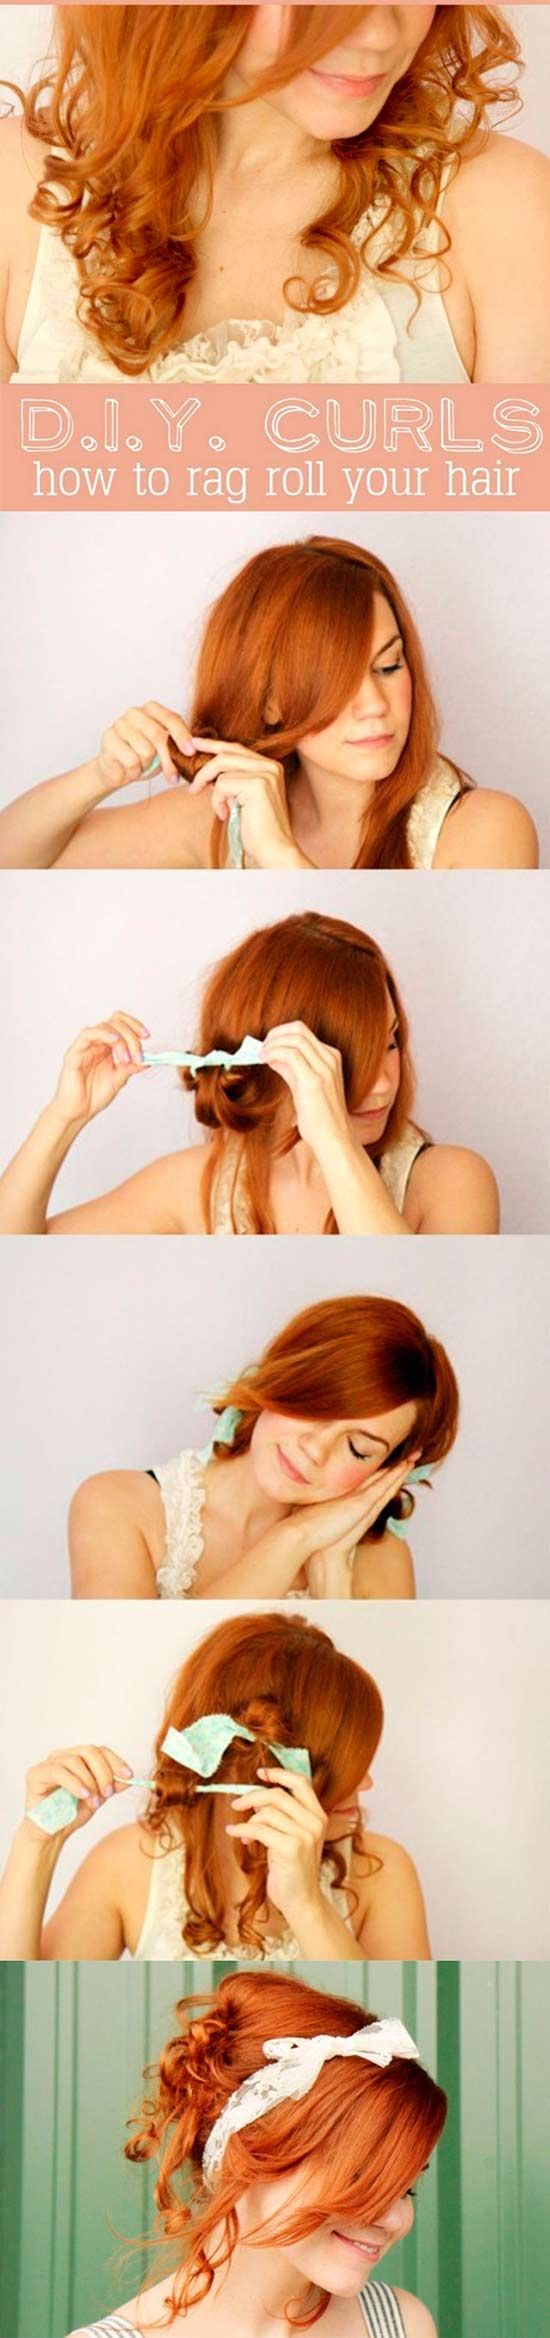 Easy Step-By-Step Hairstyle Tutorials for Chic, Girly Looks  #hairstyles #hairstyletutorials